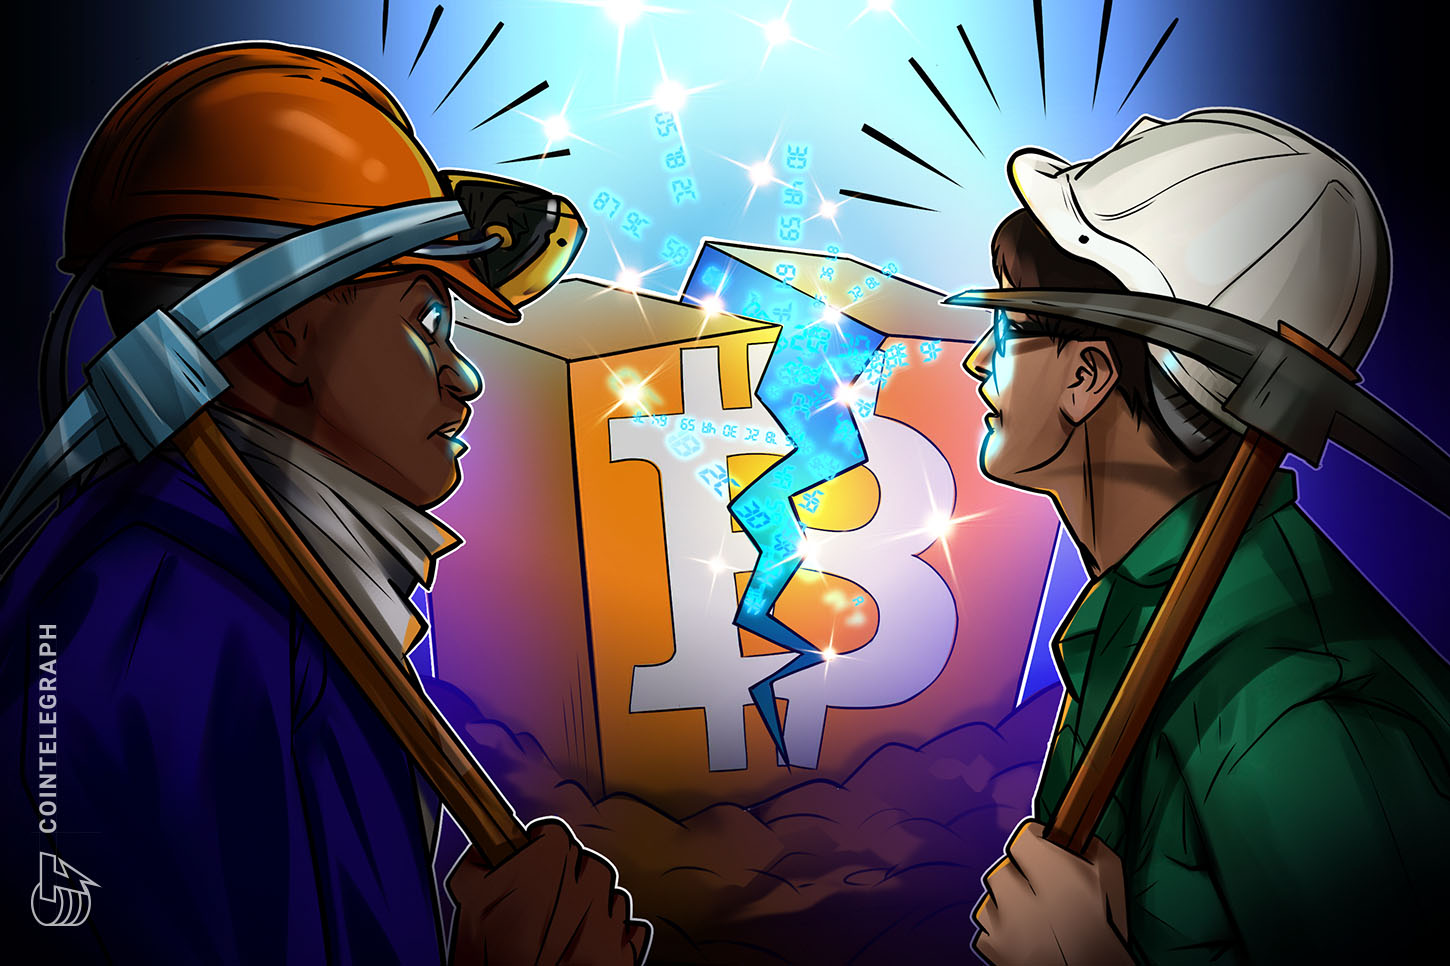 Bitcoin halving encourages miners to sell for double, says Decred co-founder thumbnail